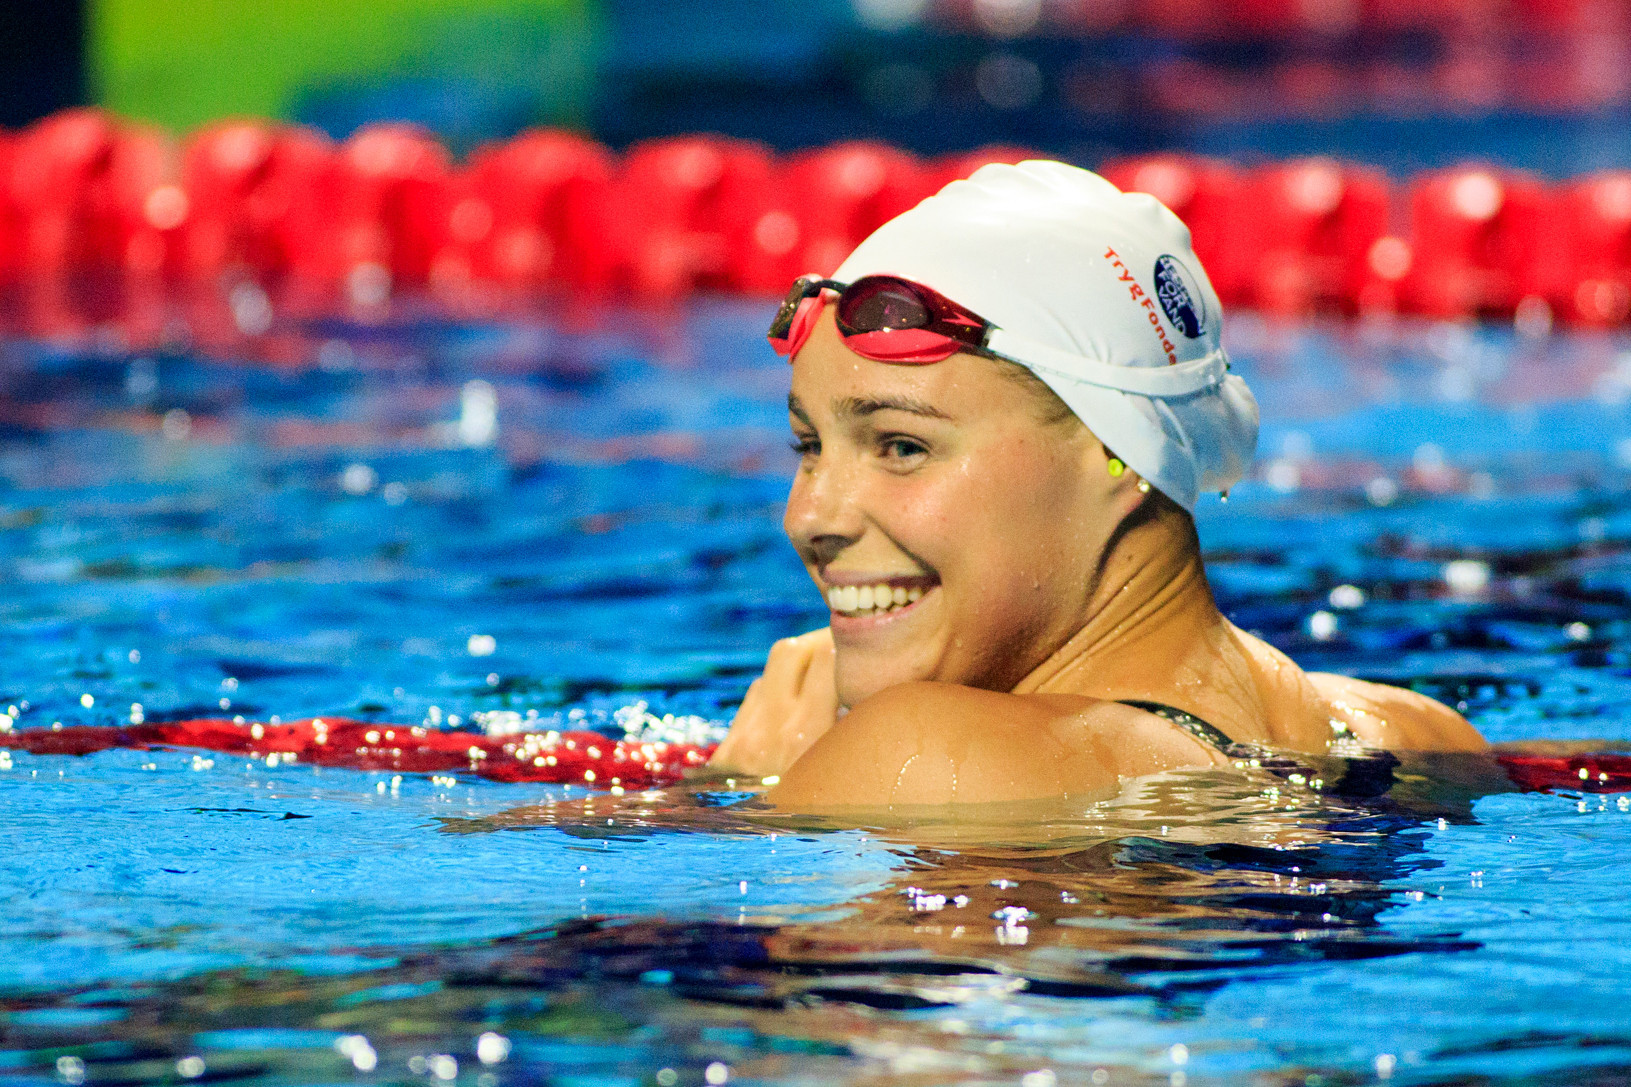 Pernille Blume of Denmark reacts after winning the 50m freestyle at the International Swimming Federation Champions Swim Series in Indianapolis ©Getty Images